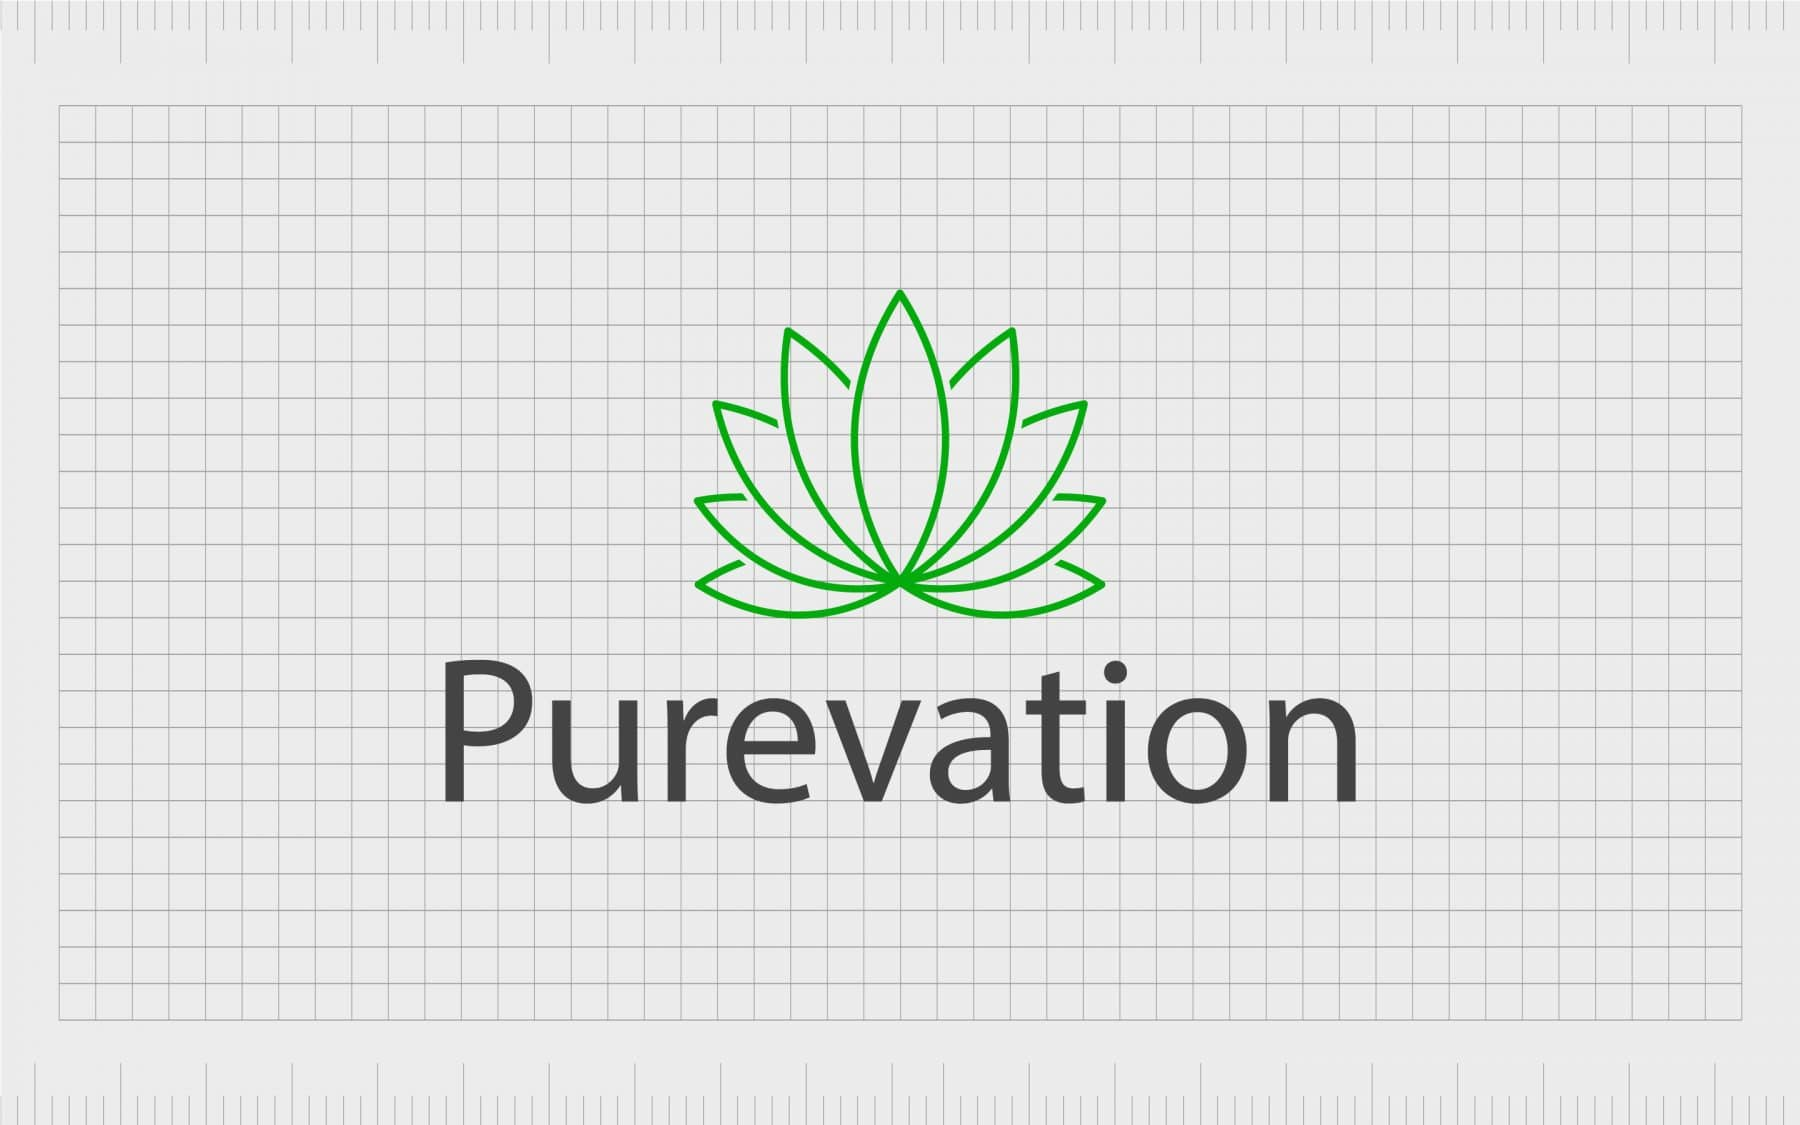 Purevation